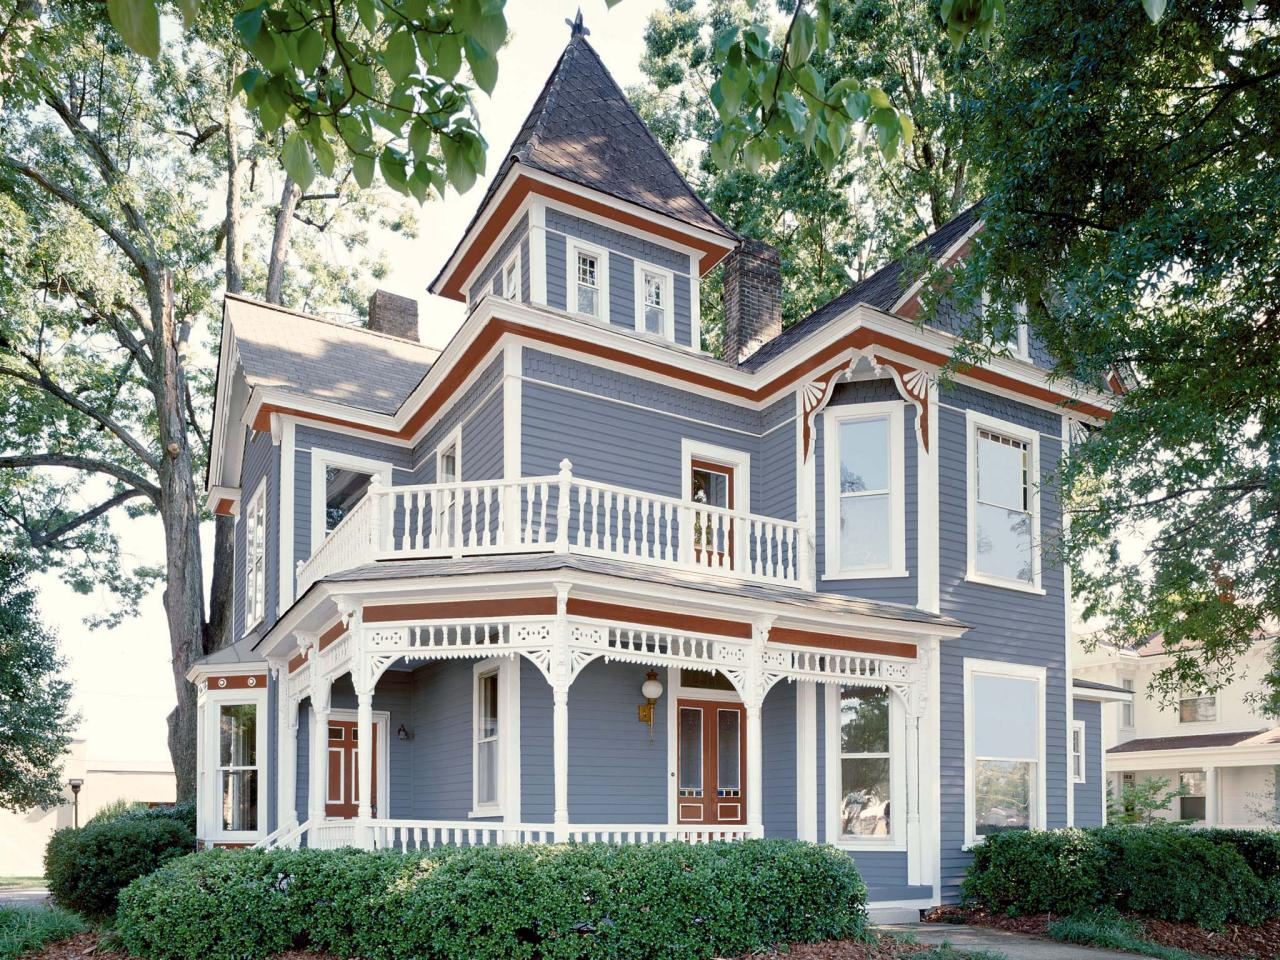 Curb appeal tips for victorian homes hgtv for Victoria home builders